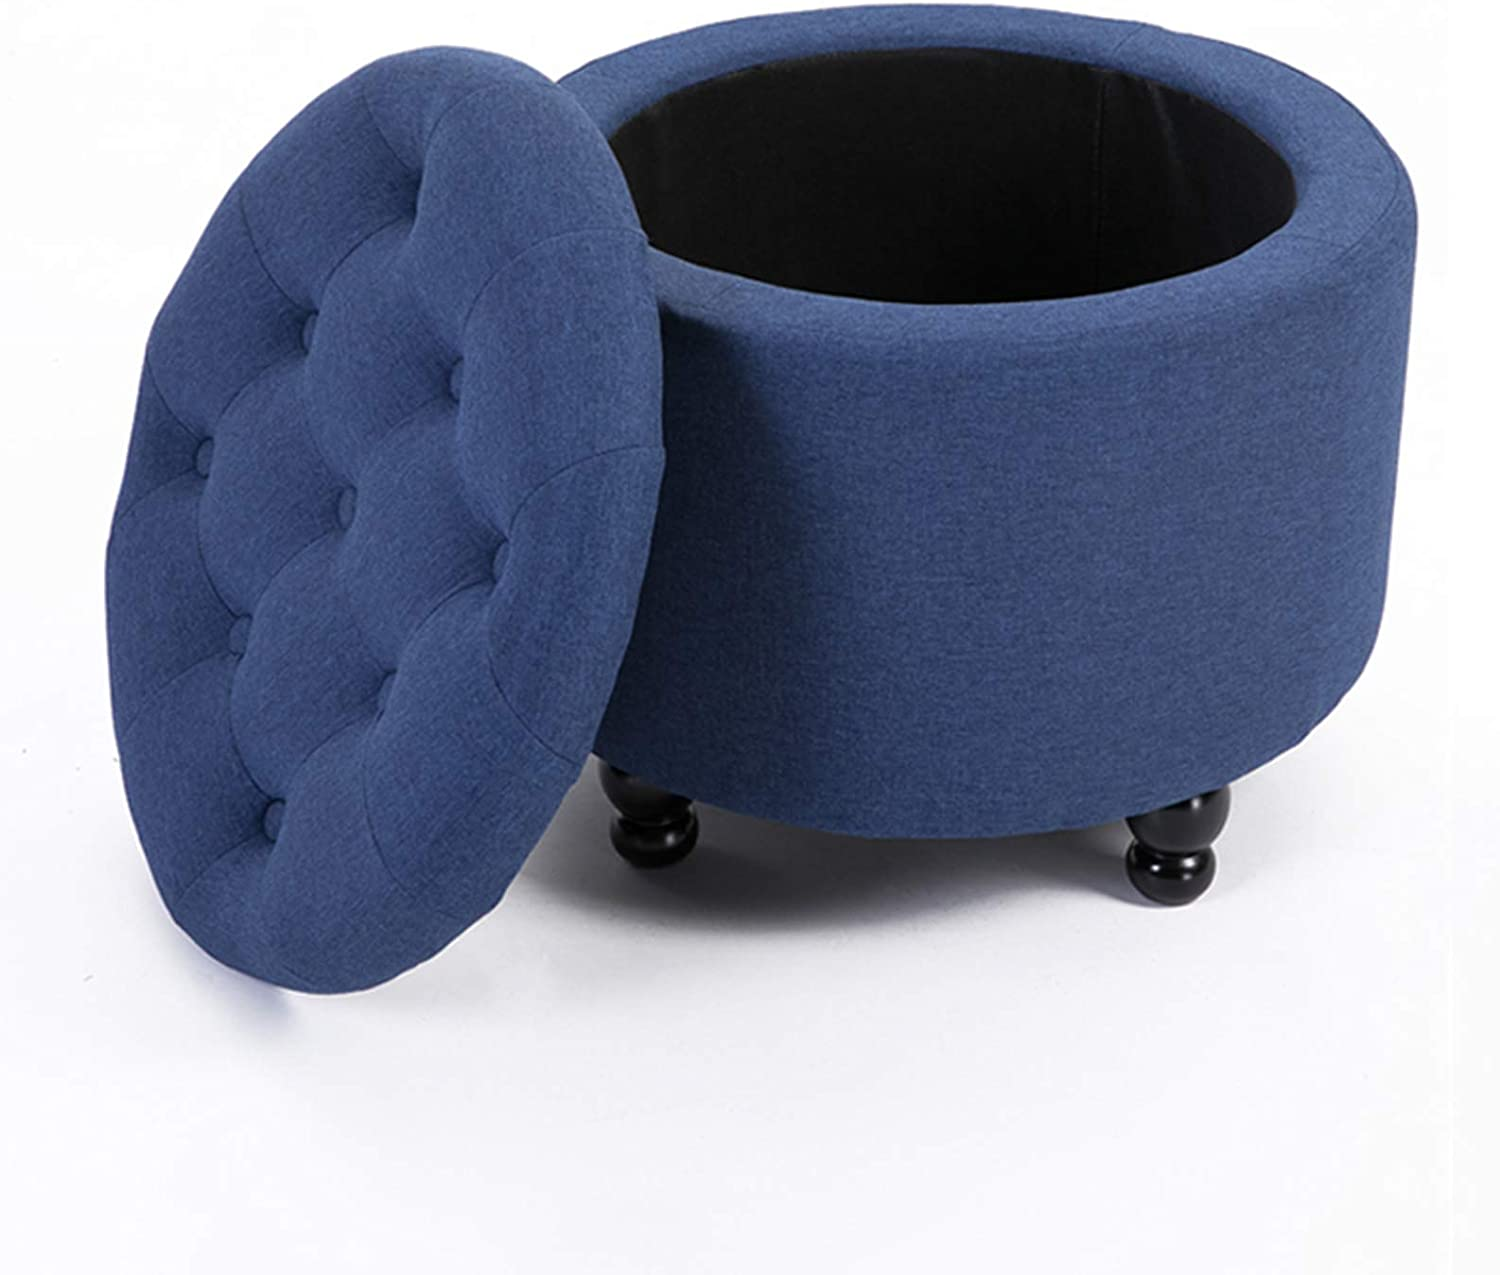 Round Storage Ottoman Complete Free Shipping Cotton Linen Foot Charlotte Mall Stool Rest Removab with